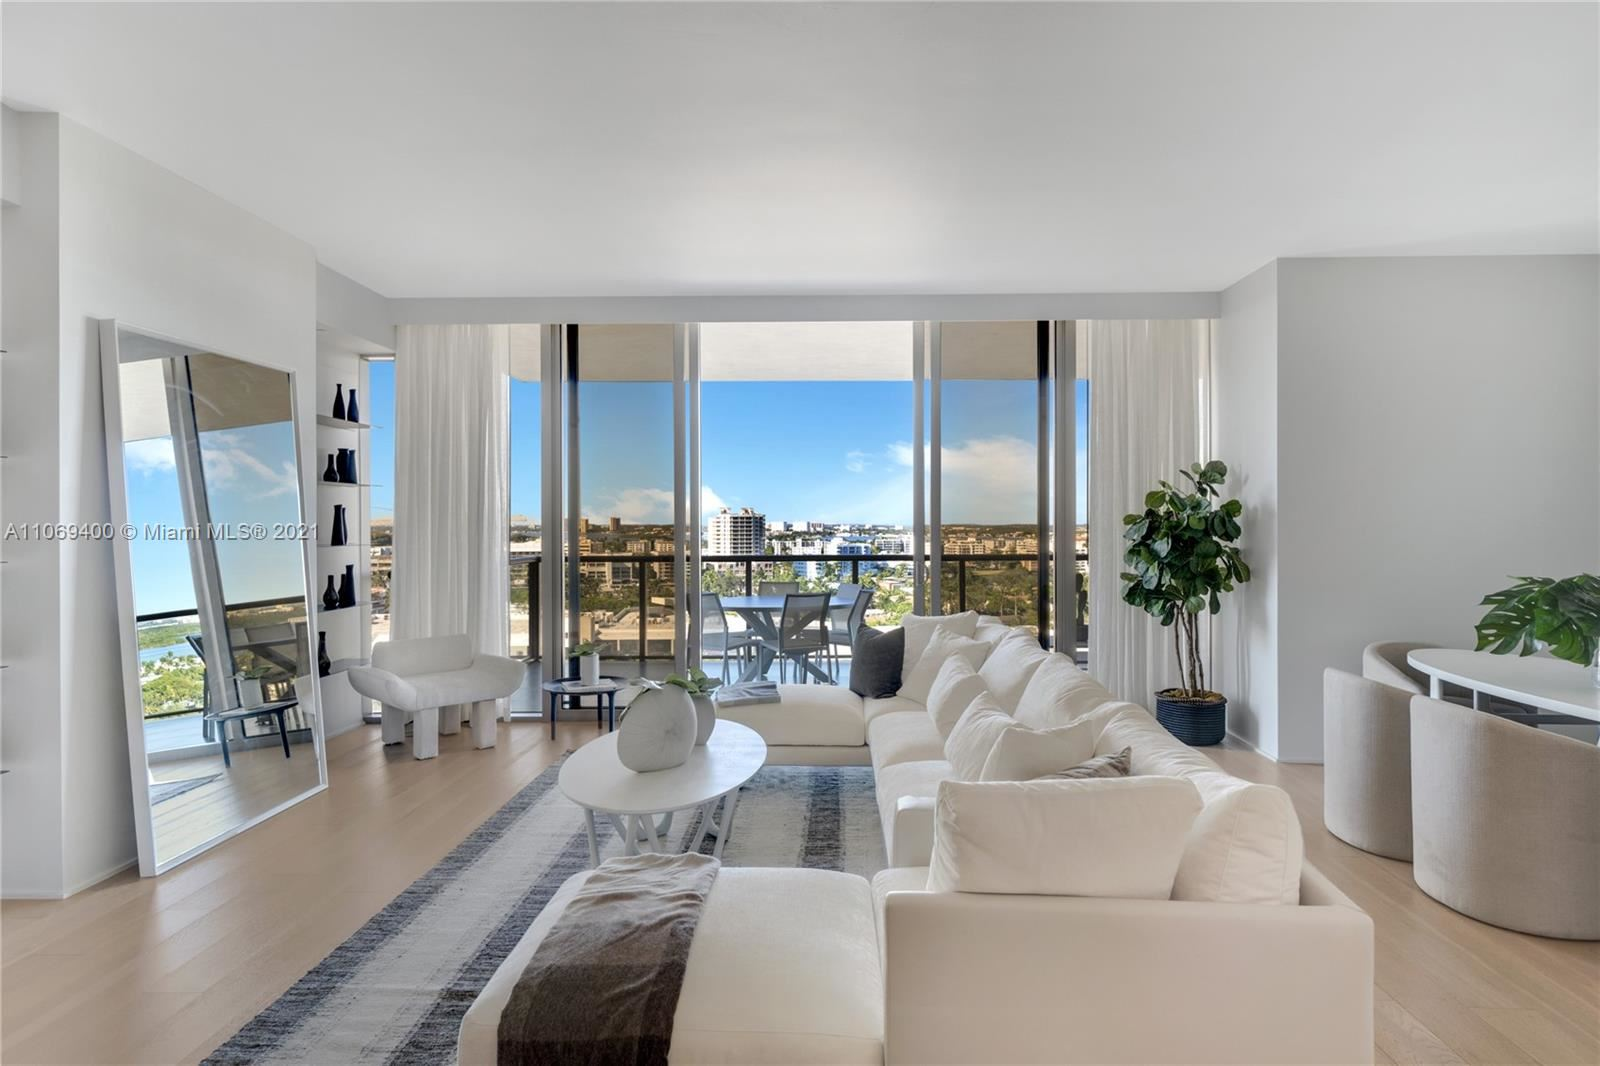 9705 Collins Ave #1205N, Bal Harbour, FL 33154 - #: A11069400